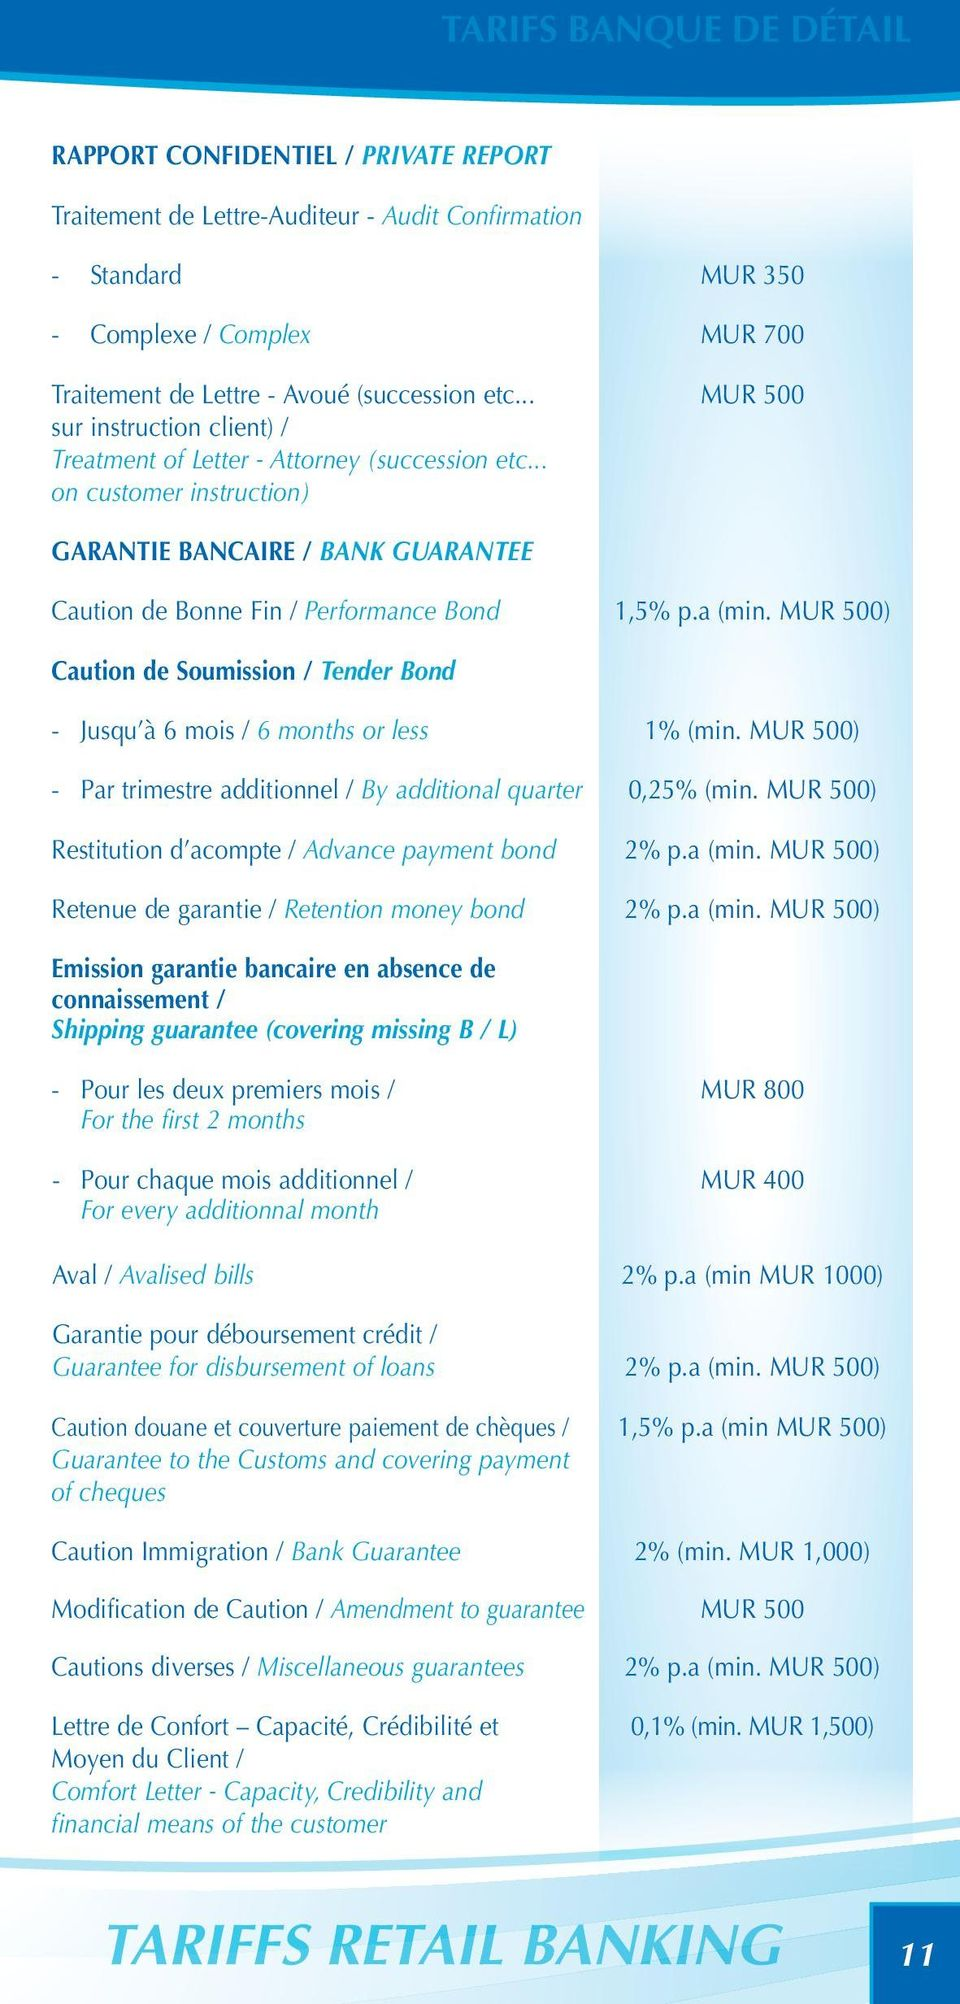 a (min. MUR 500) Caution de Soumission / Tender Bond - Jusqu à 6 mois / 6 months or less 1% (min. MUR 500) - Par trimestre additionnel / By additional quarter 0,25% (min.